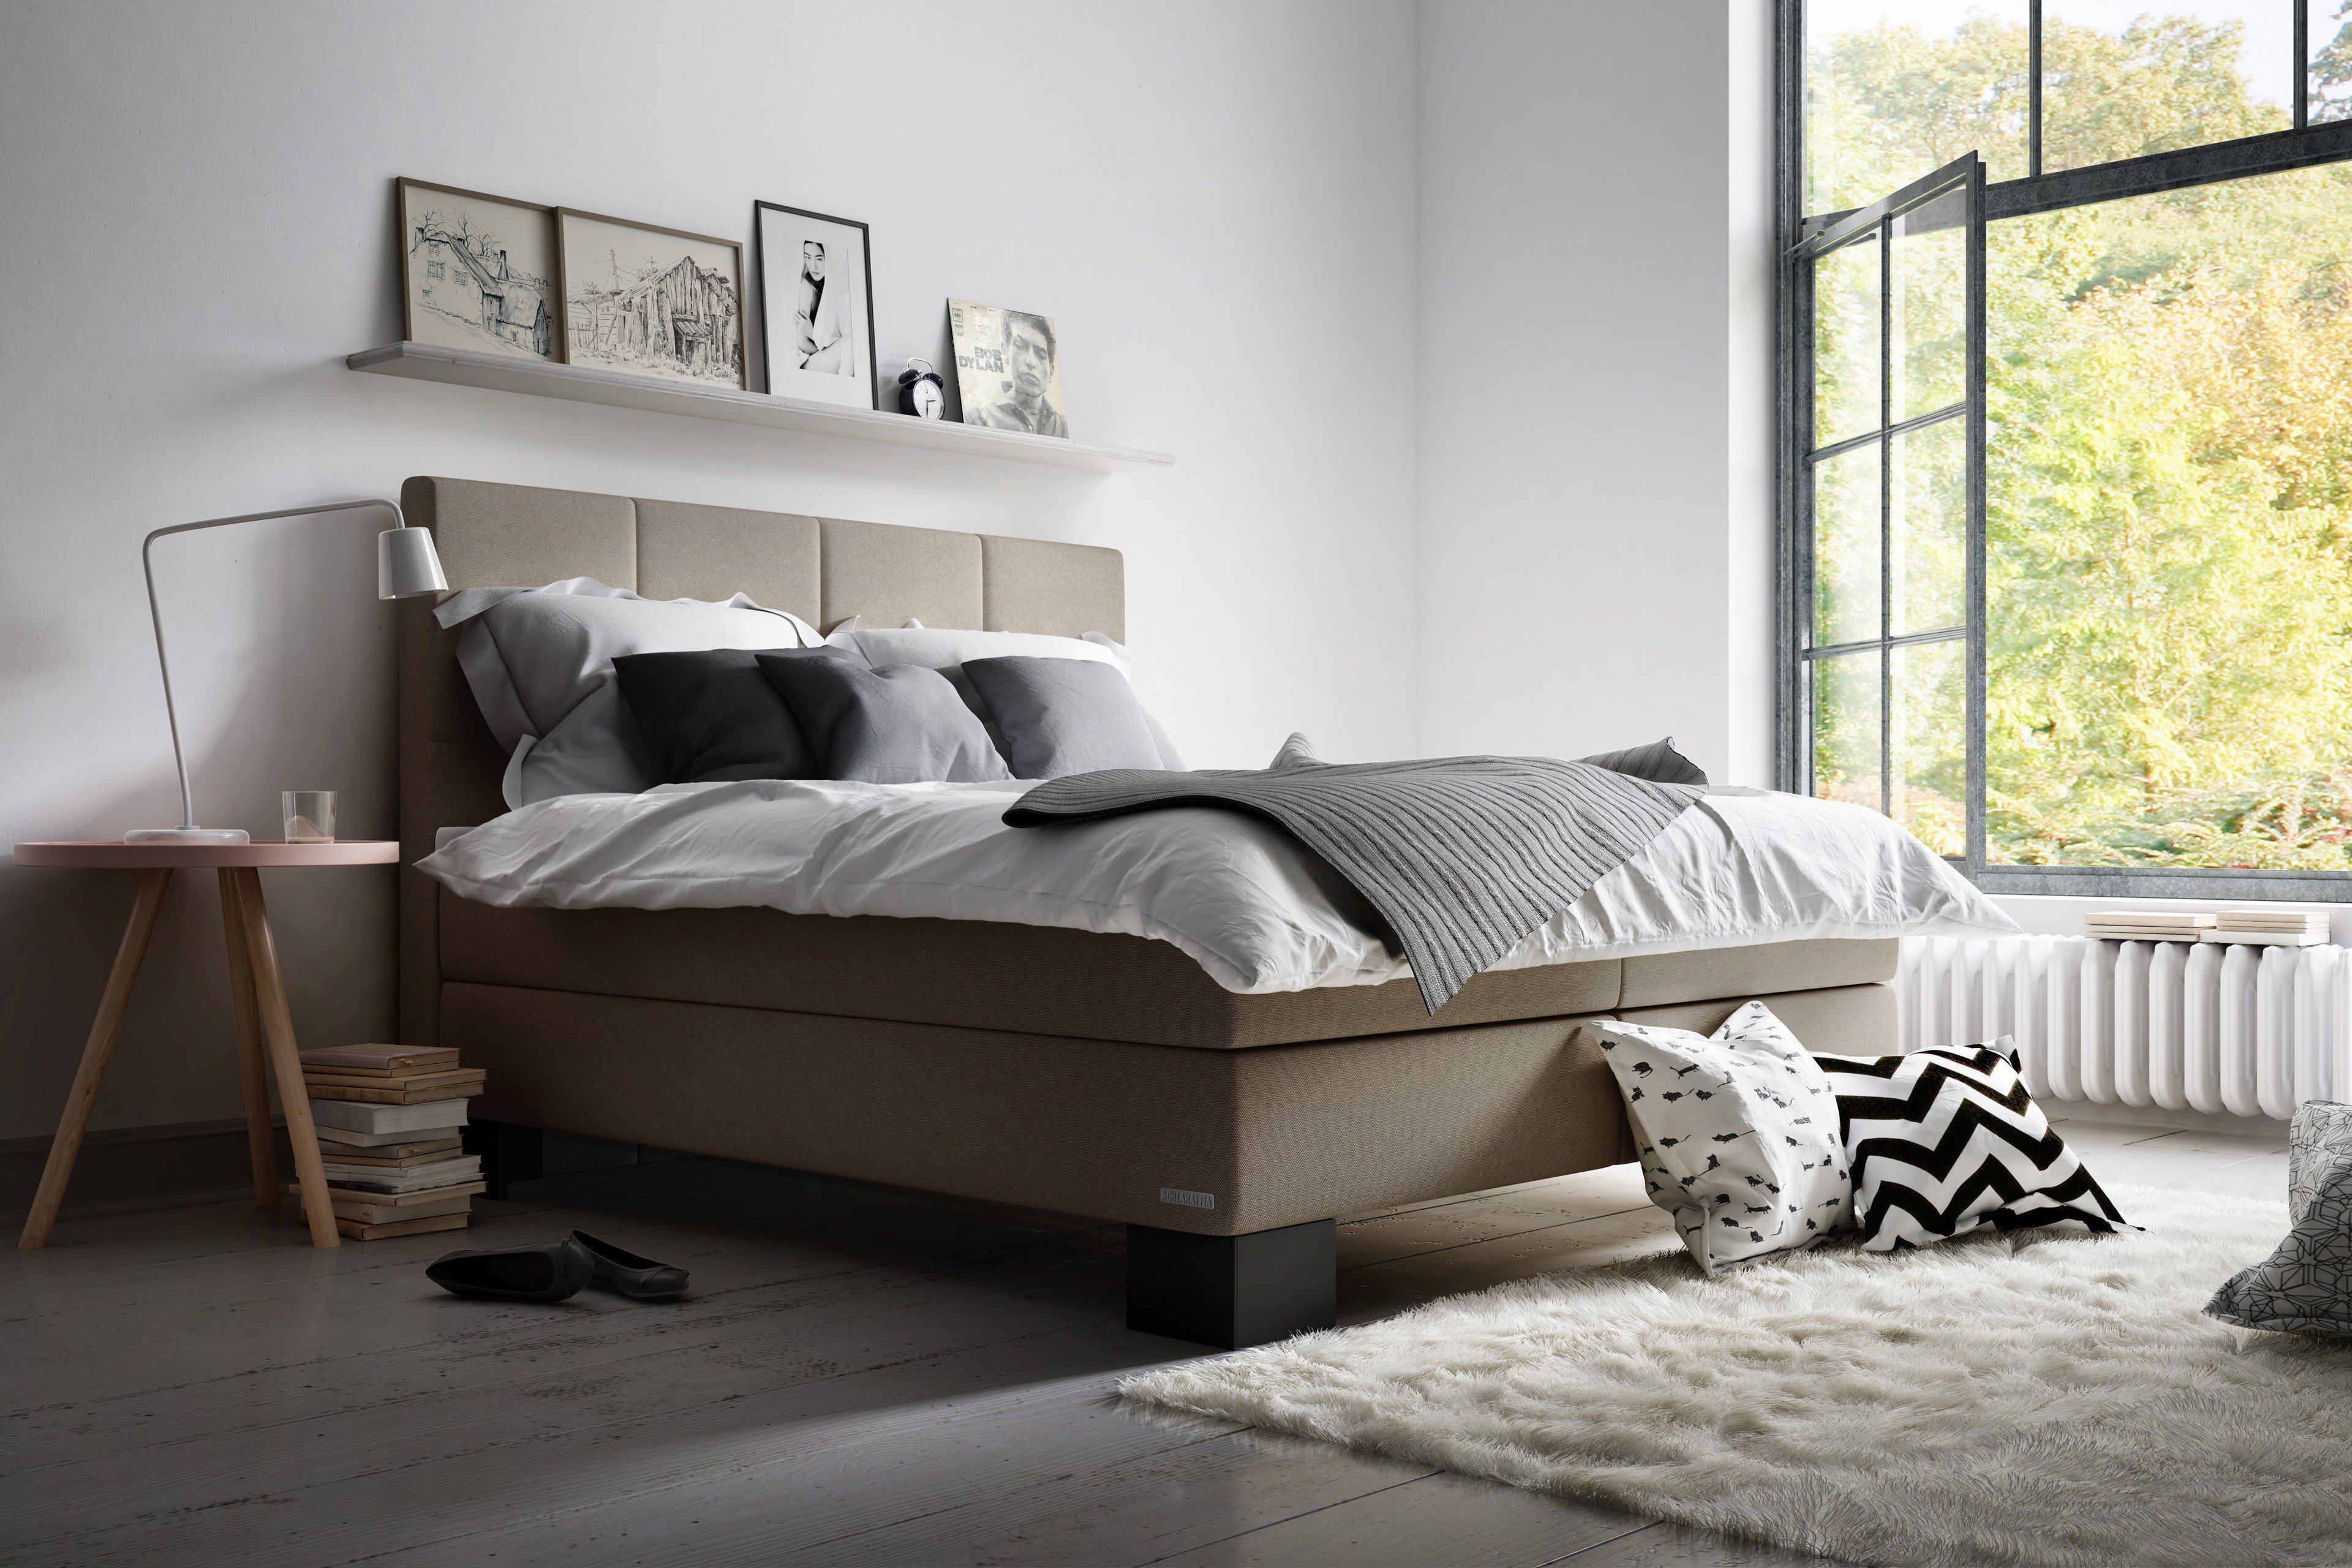 boxspringbett sagas von schlaraffia in sand m bel letz ihr online shop. Black Bedroom Furniture Sets. Home Design Ideas